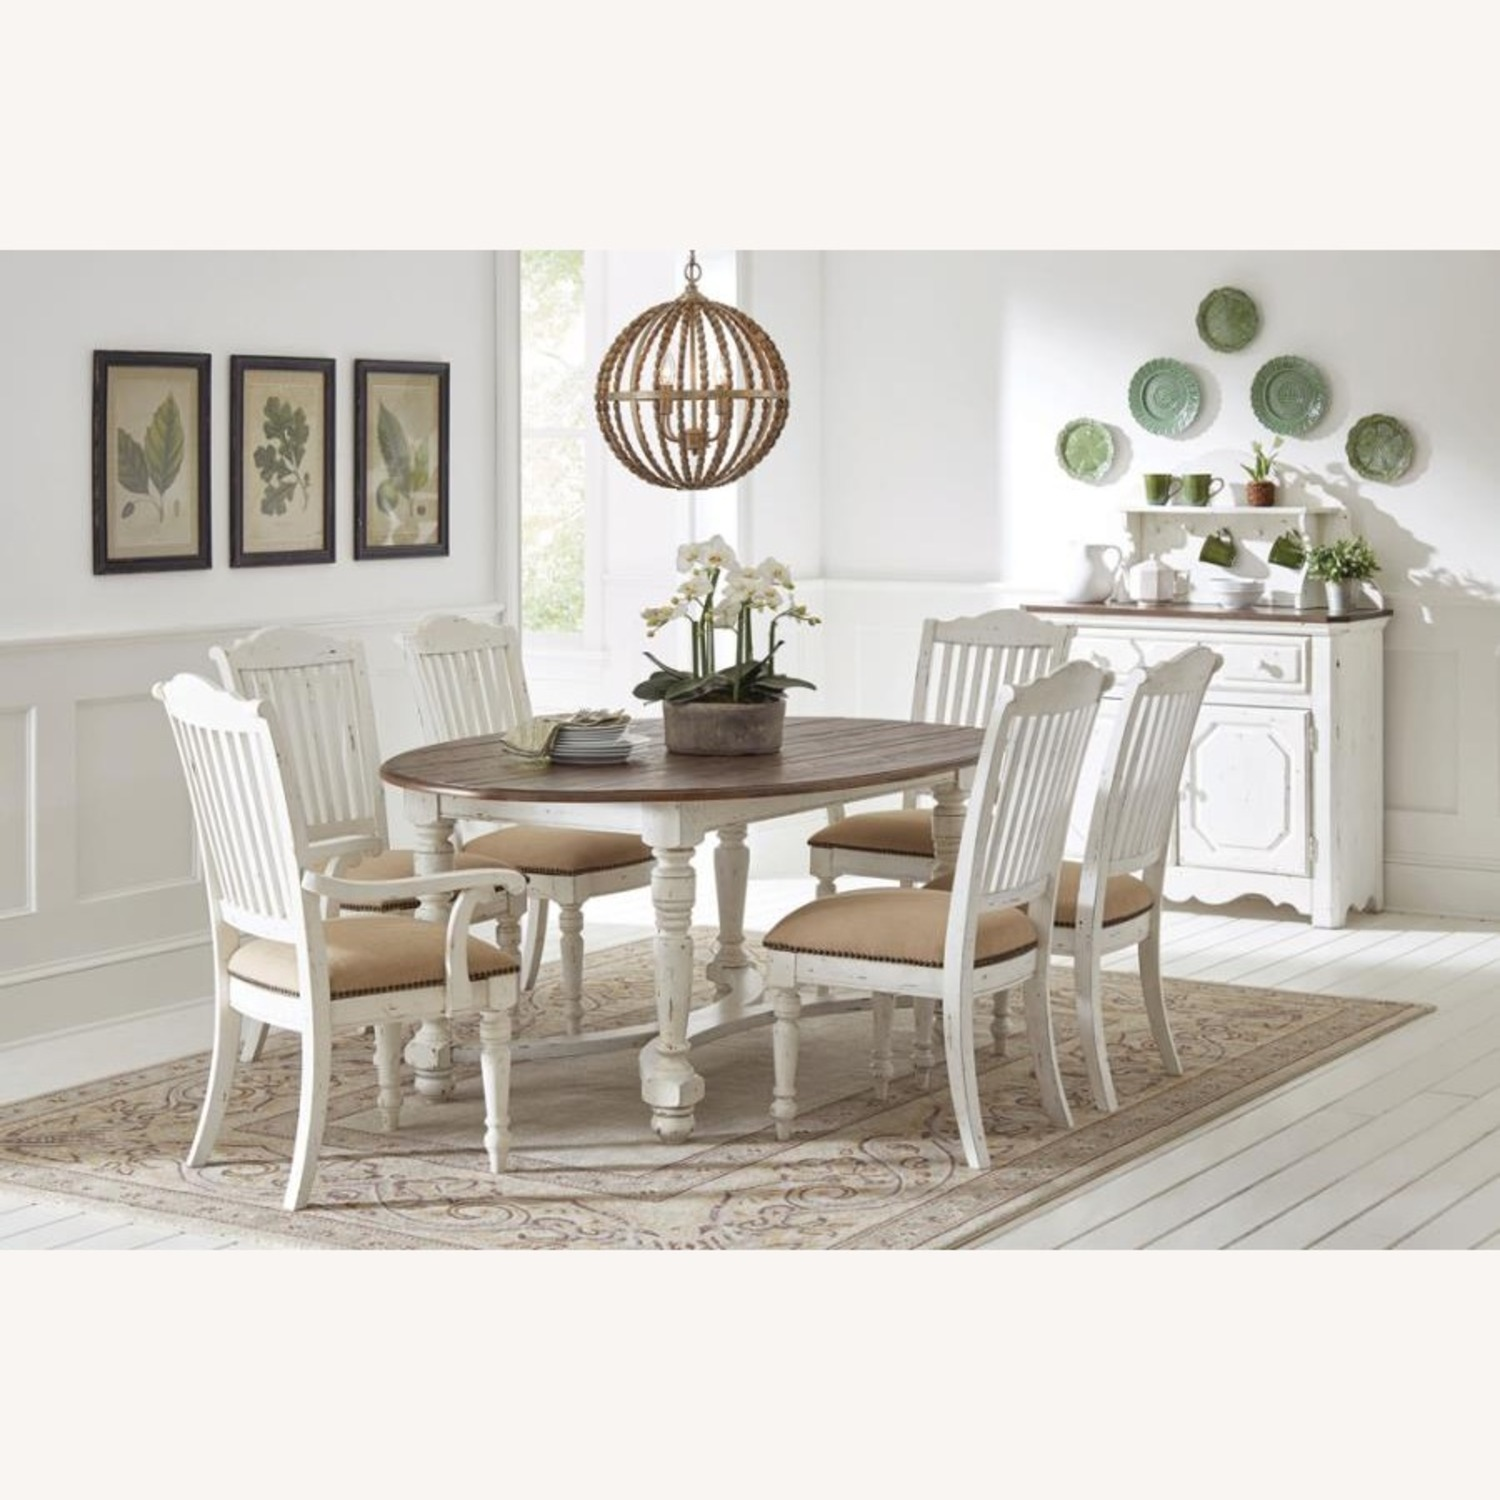 Rustic Farmhouse Style Side Chair In White Finish - image-5